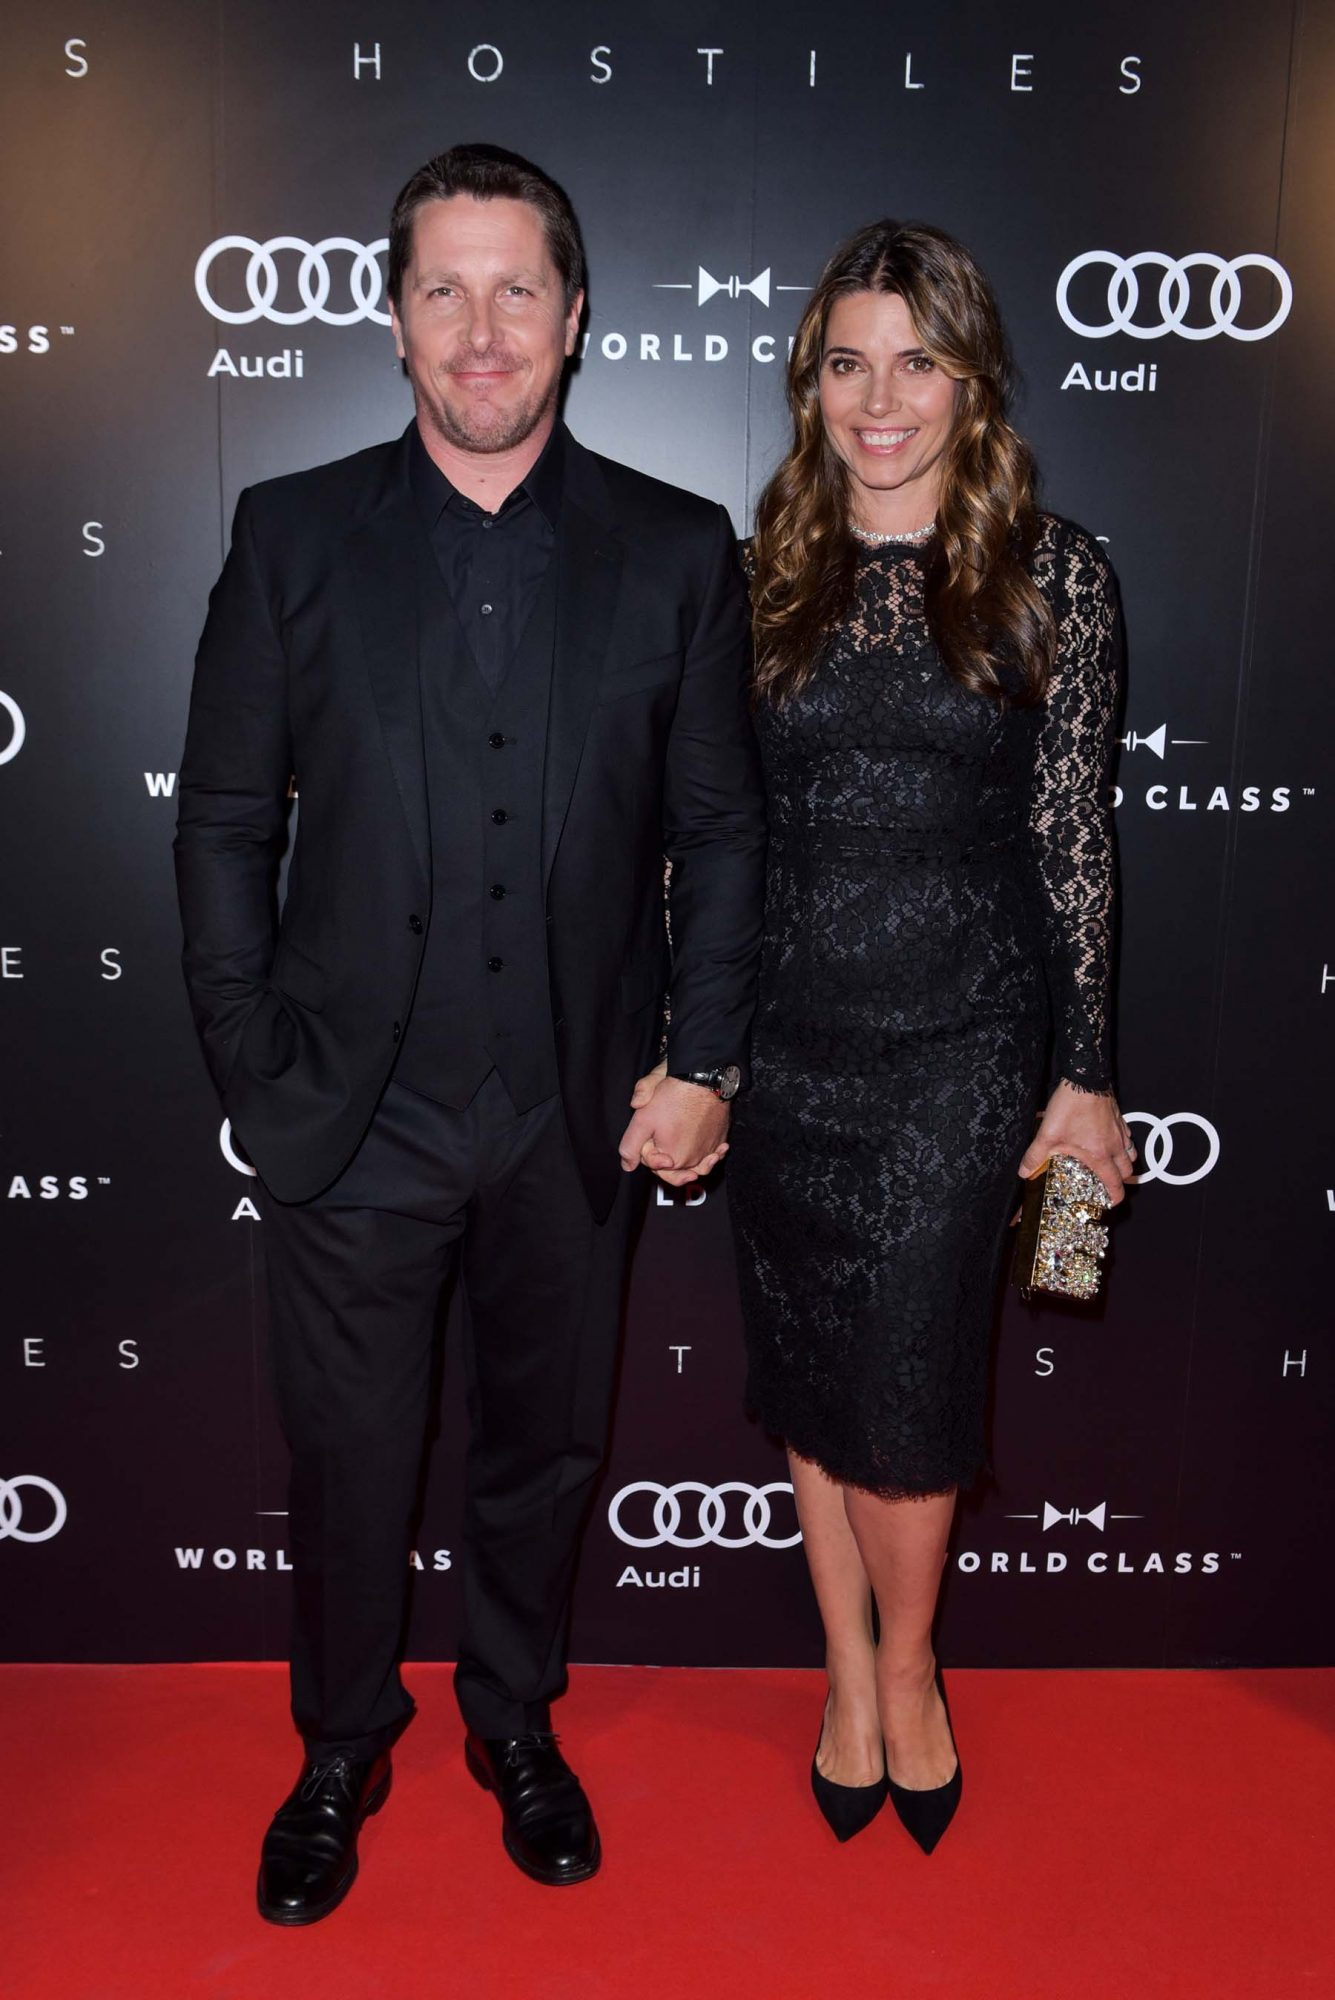 """Diageo World Class Canada And Audi Present """"Hostiles"""" Premiere Party At Bisha Hotel Toronto"""